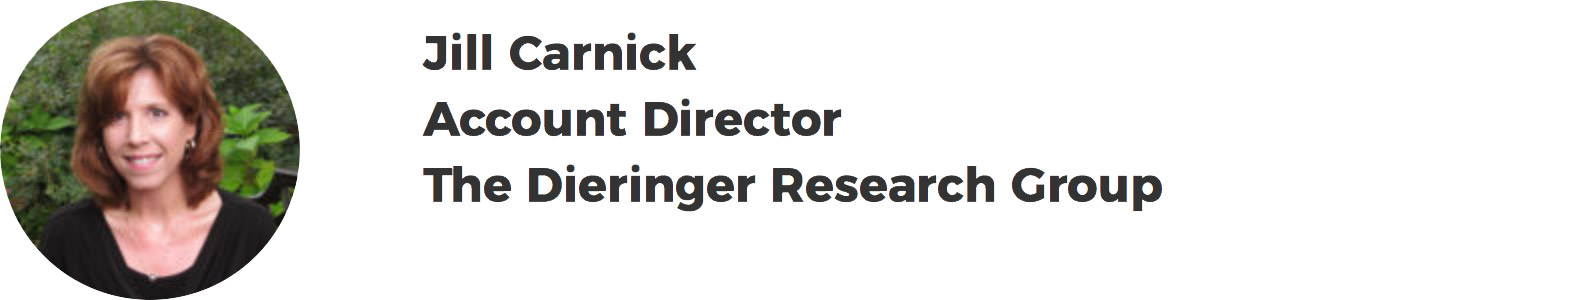 Jill Carnick – Account Director – The Dieringer Research Group